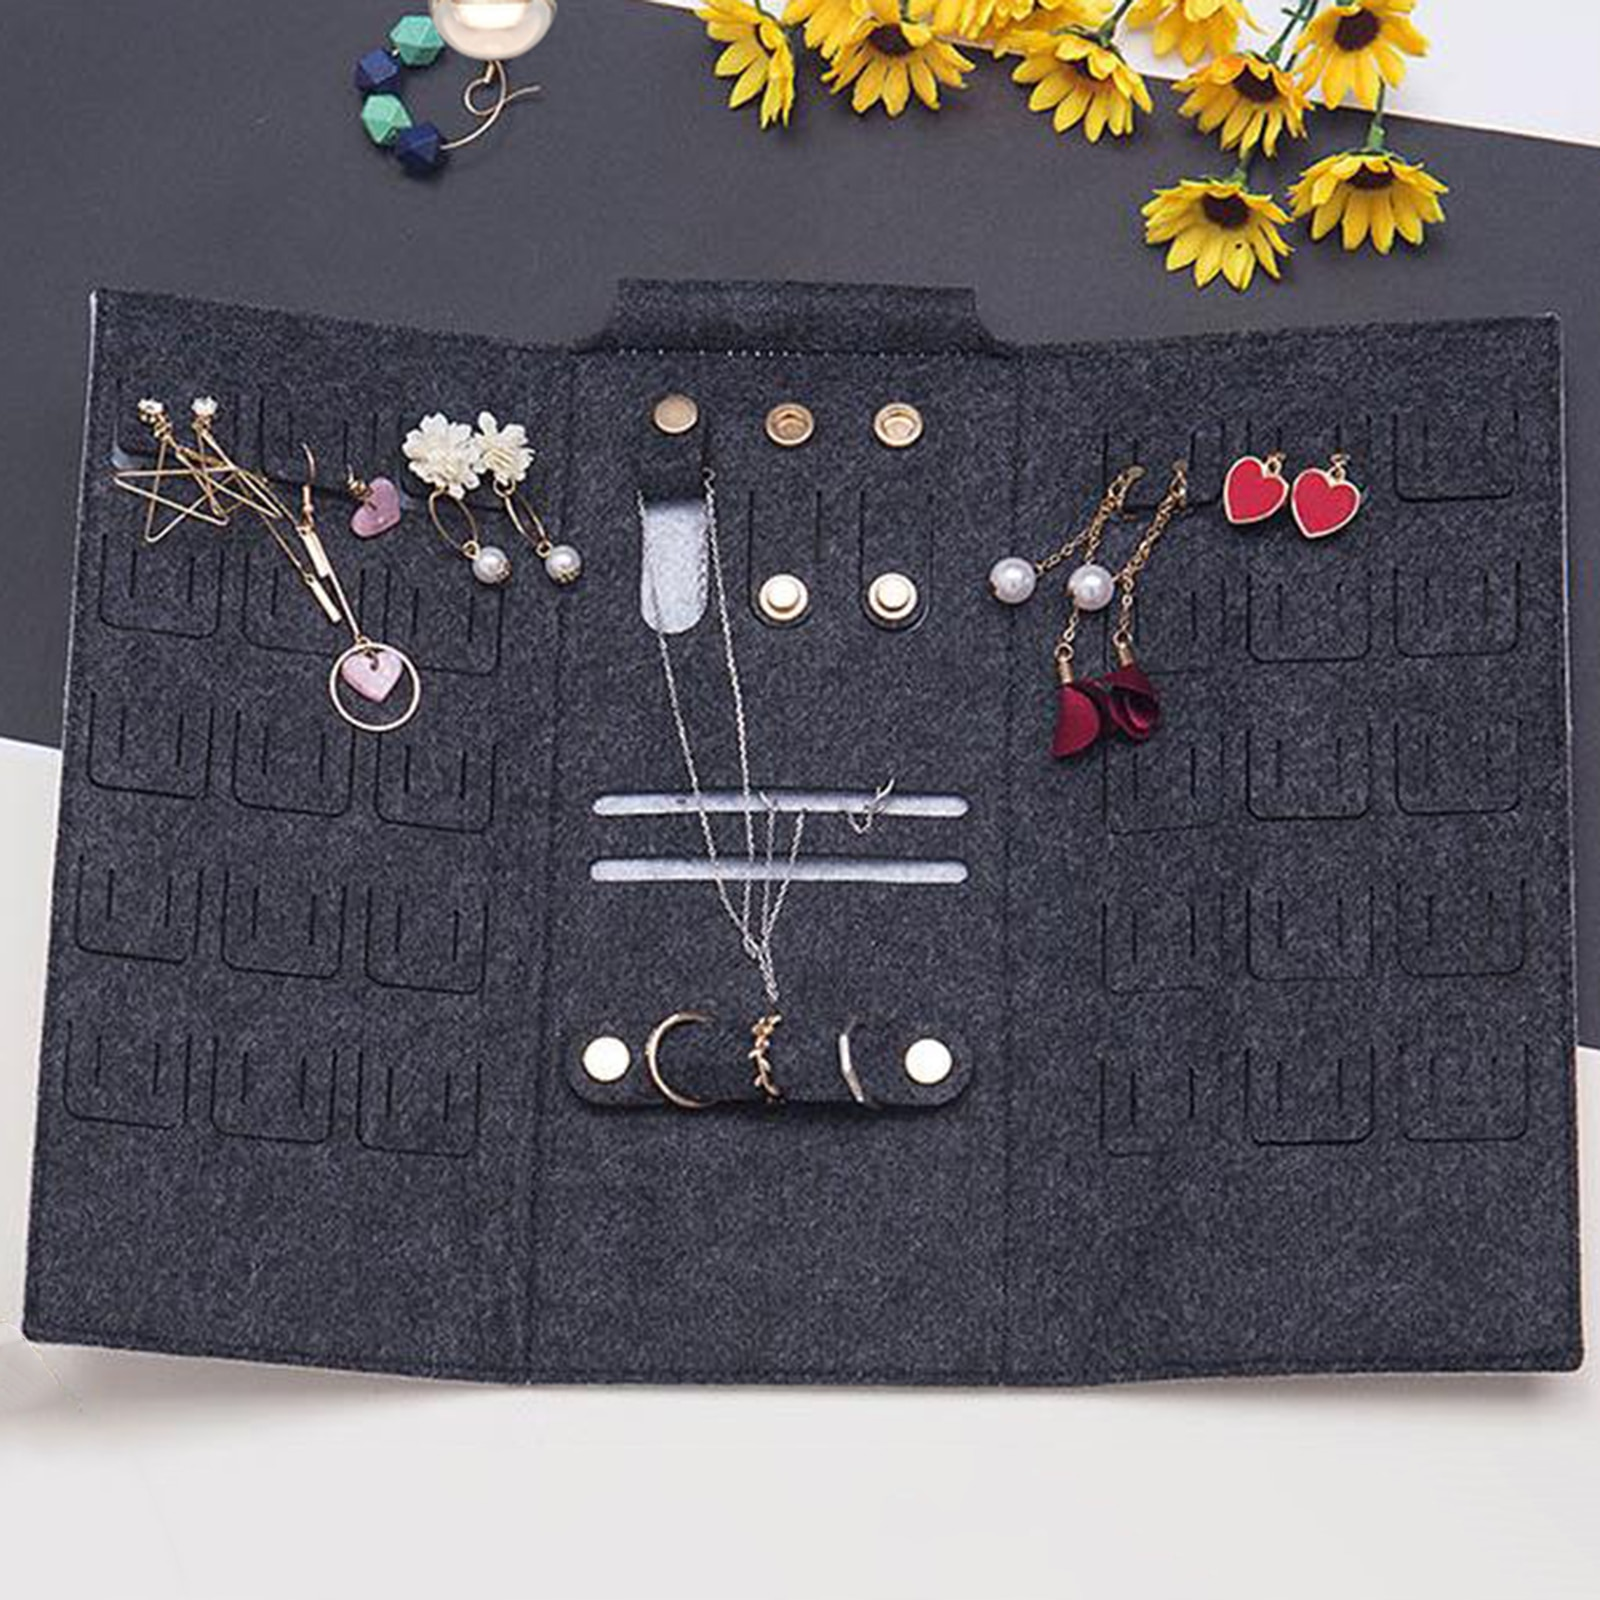 Organizer Secure Roll Jewelry Storage Bag for Travel Multiple Earrings